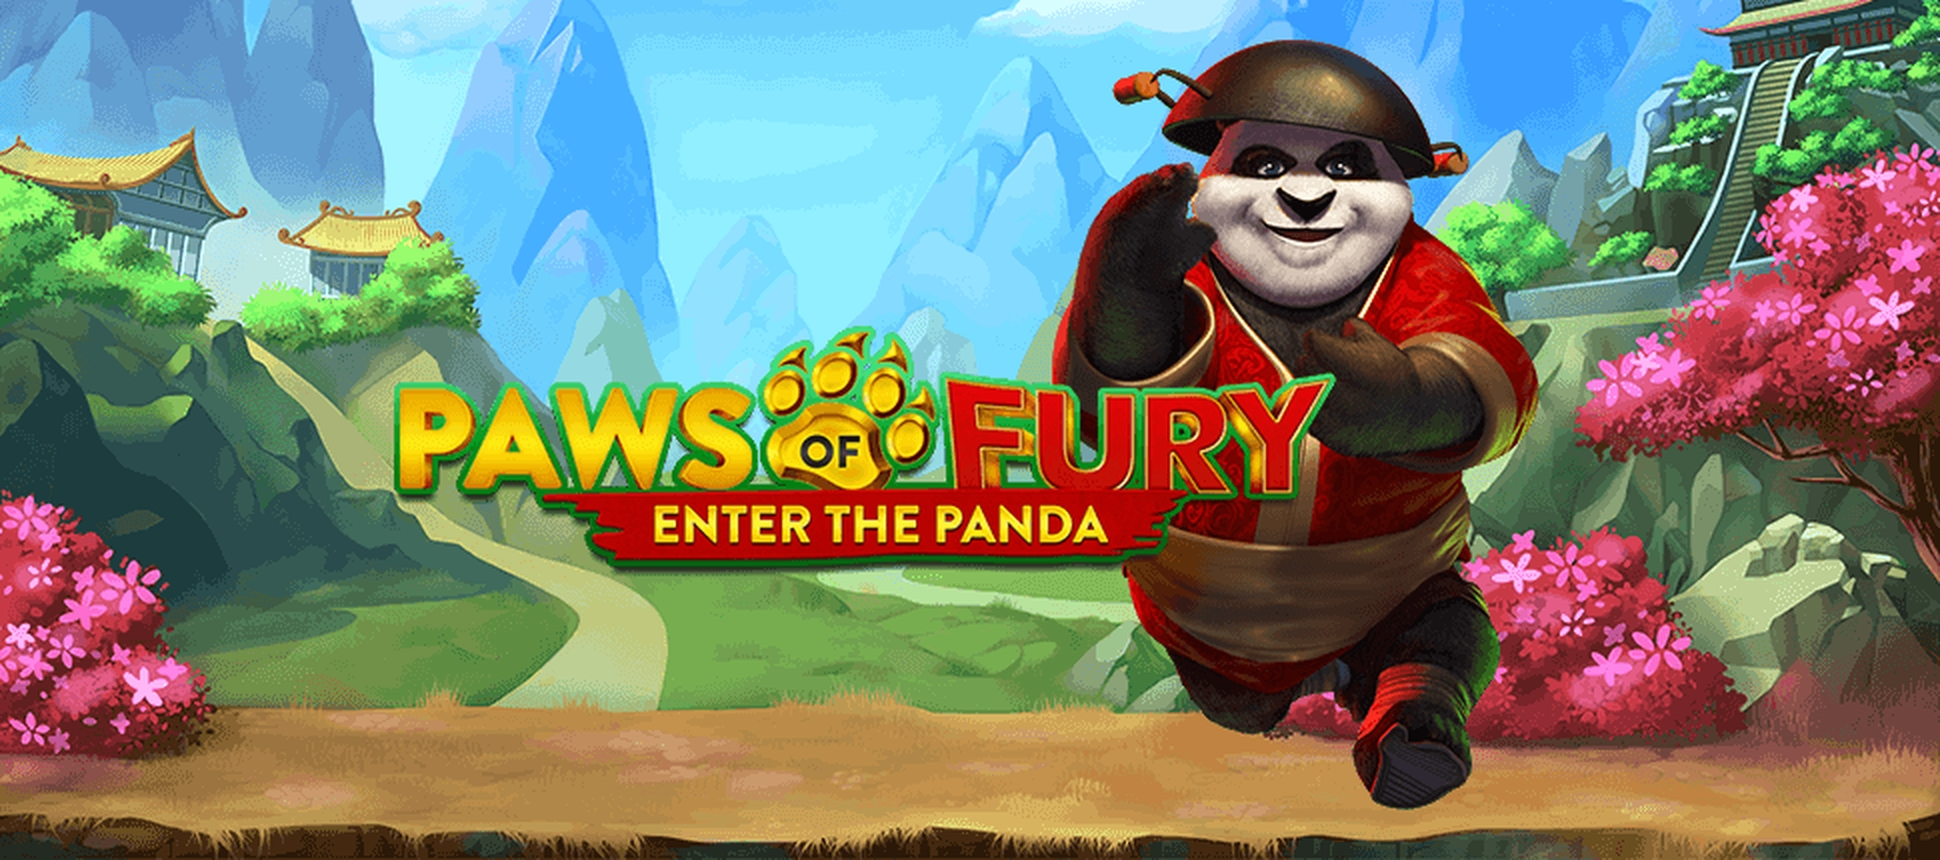 The Paws of Fury Online Slot Demo Game by Blueprint Gaming